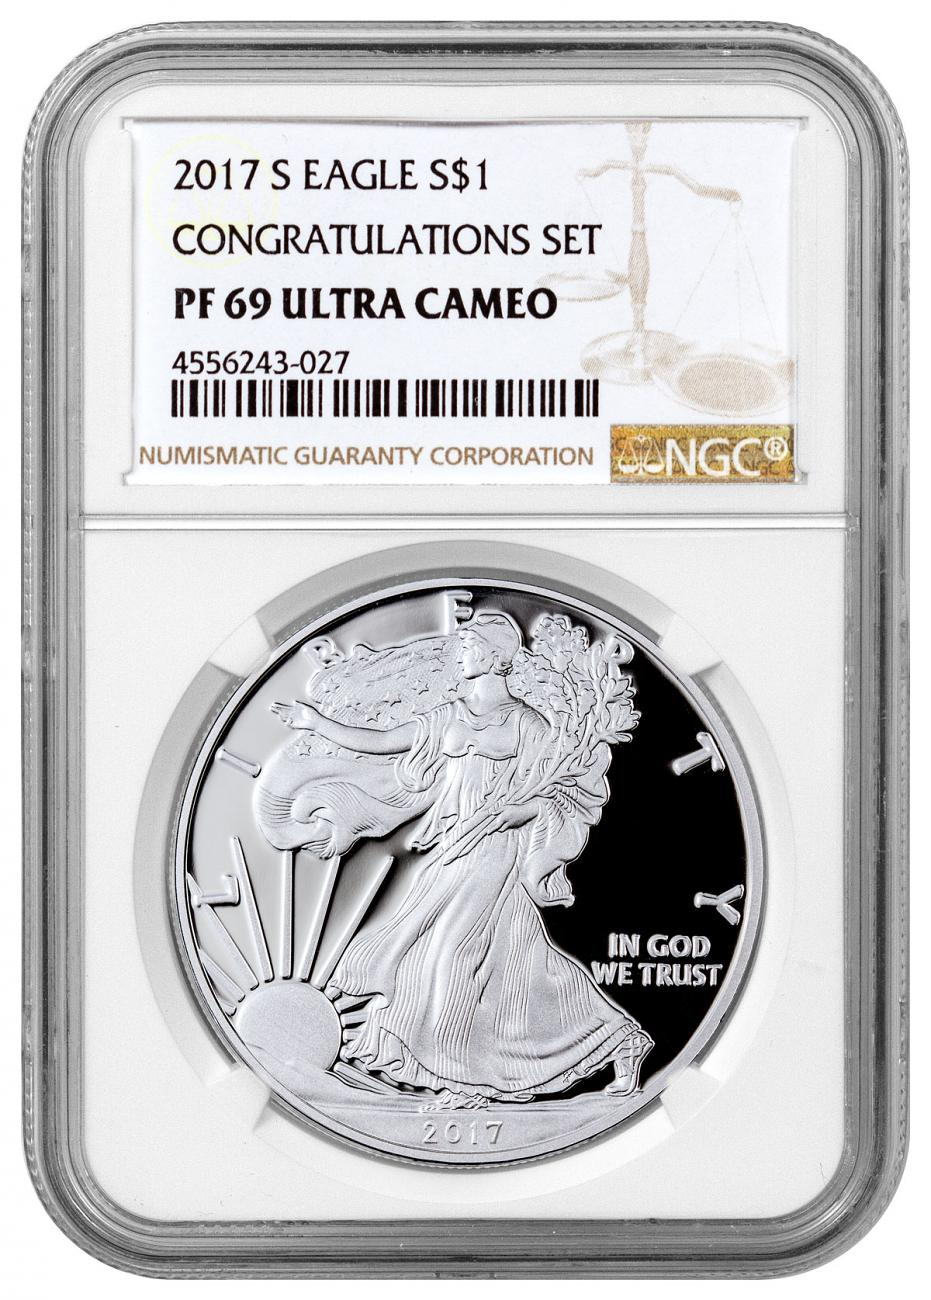 2017 S Proof Silver Eagle Congratulations Set Ngc Pf69